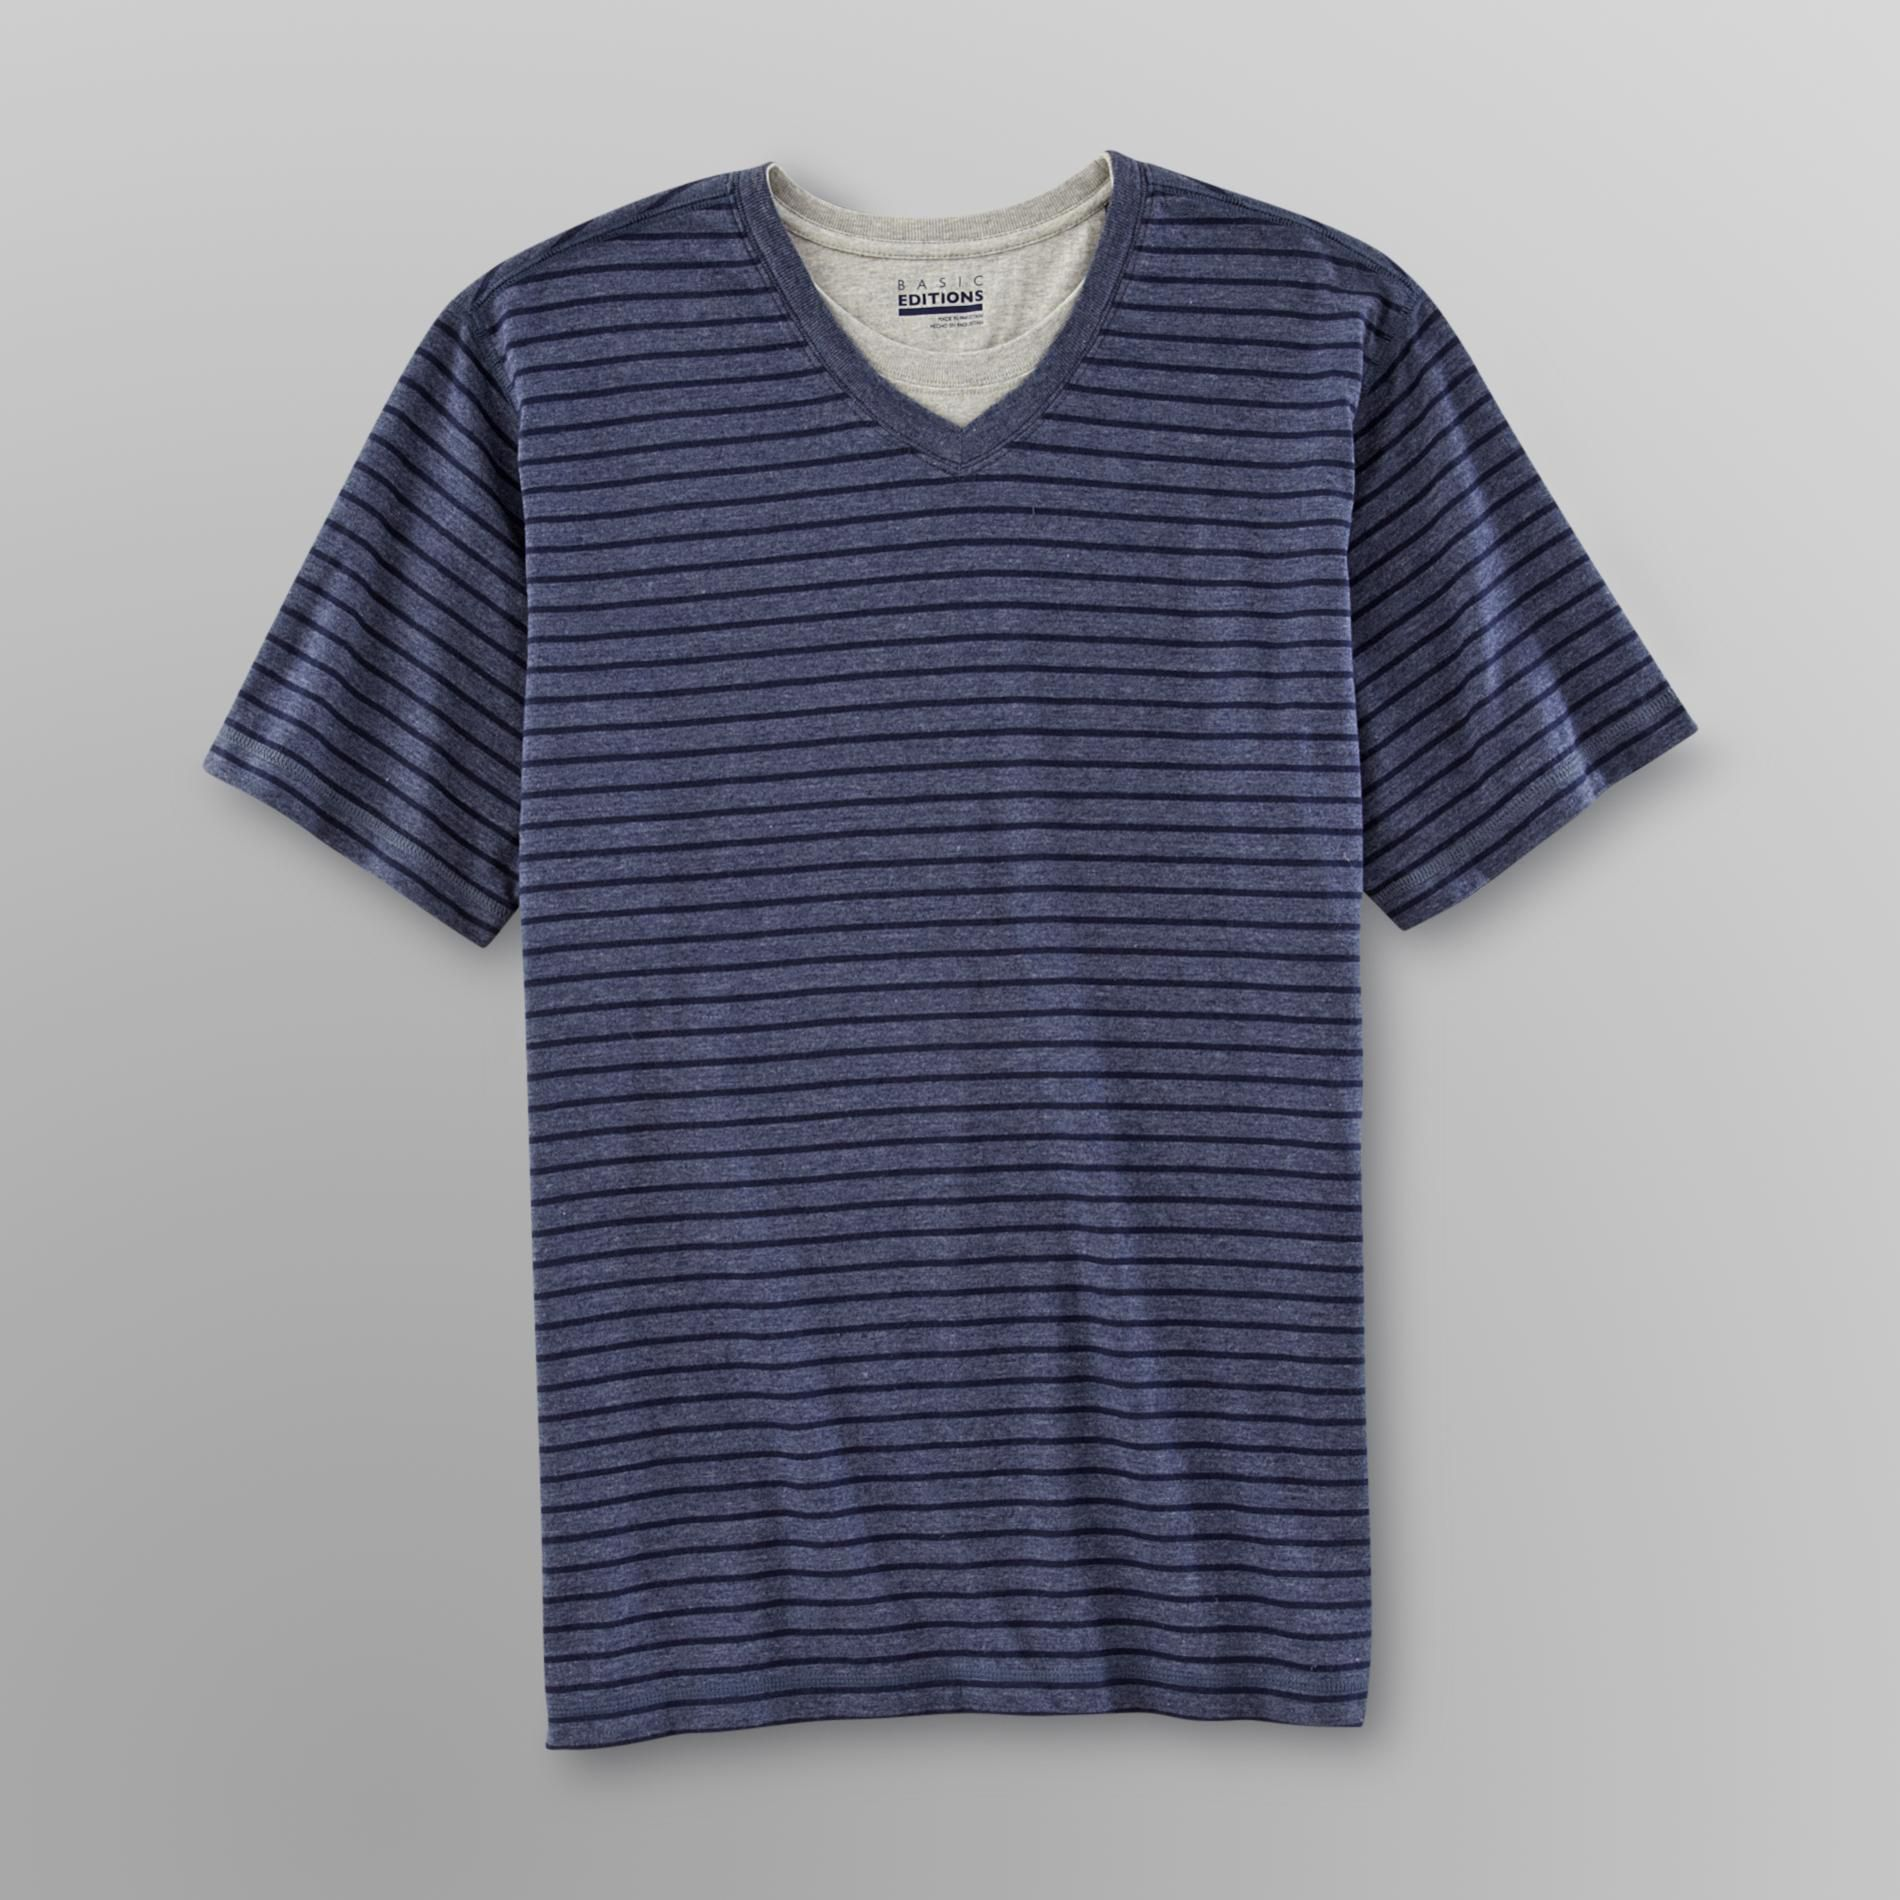 Basic Editions Men's T-Shirt with Inset at Kmart.com